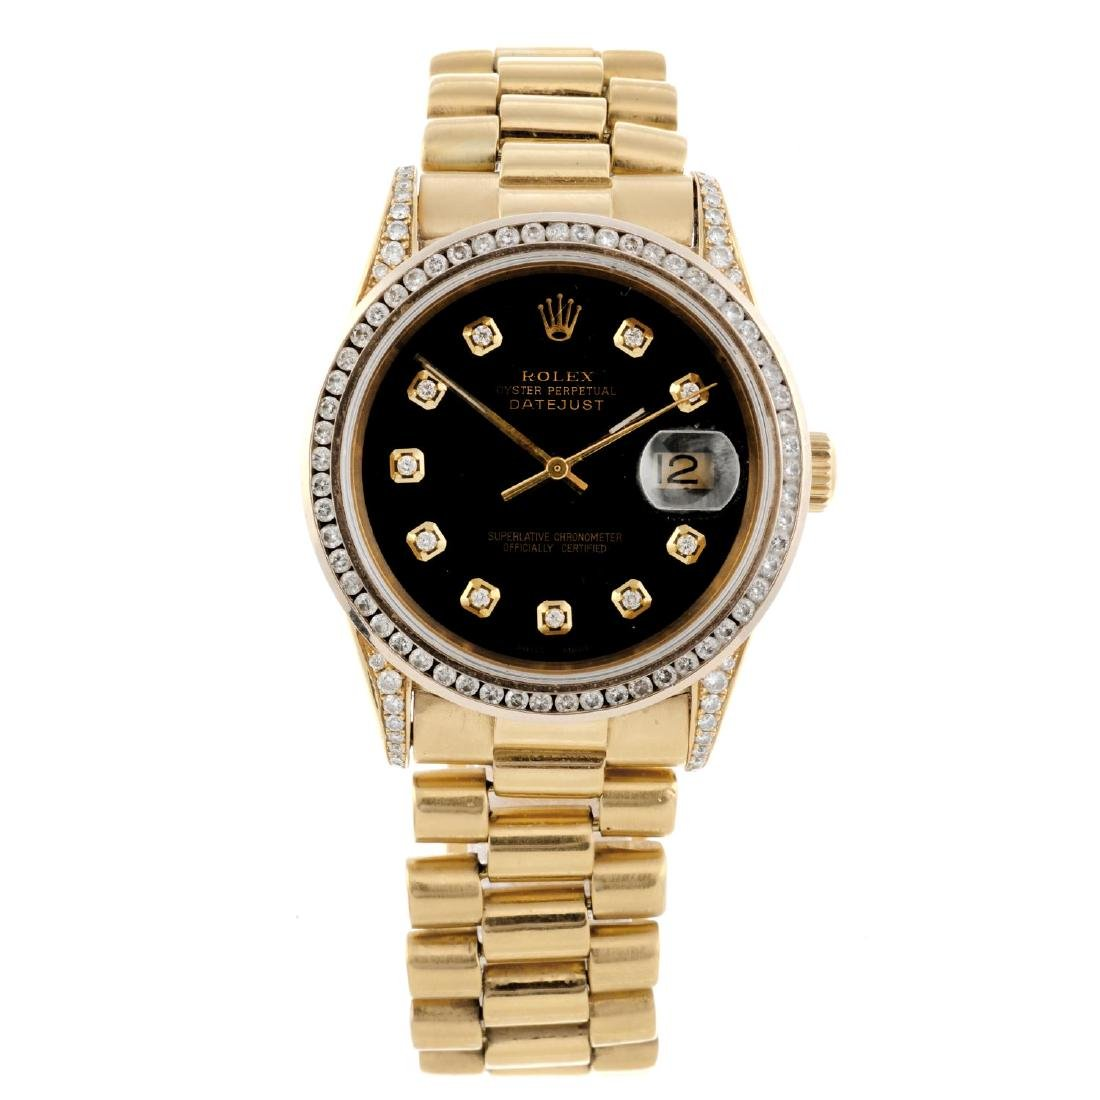 ROLEX - a gentleman's Oyster Perpetual Datejust